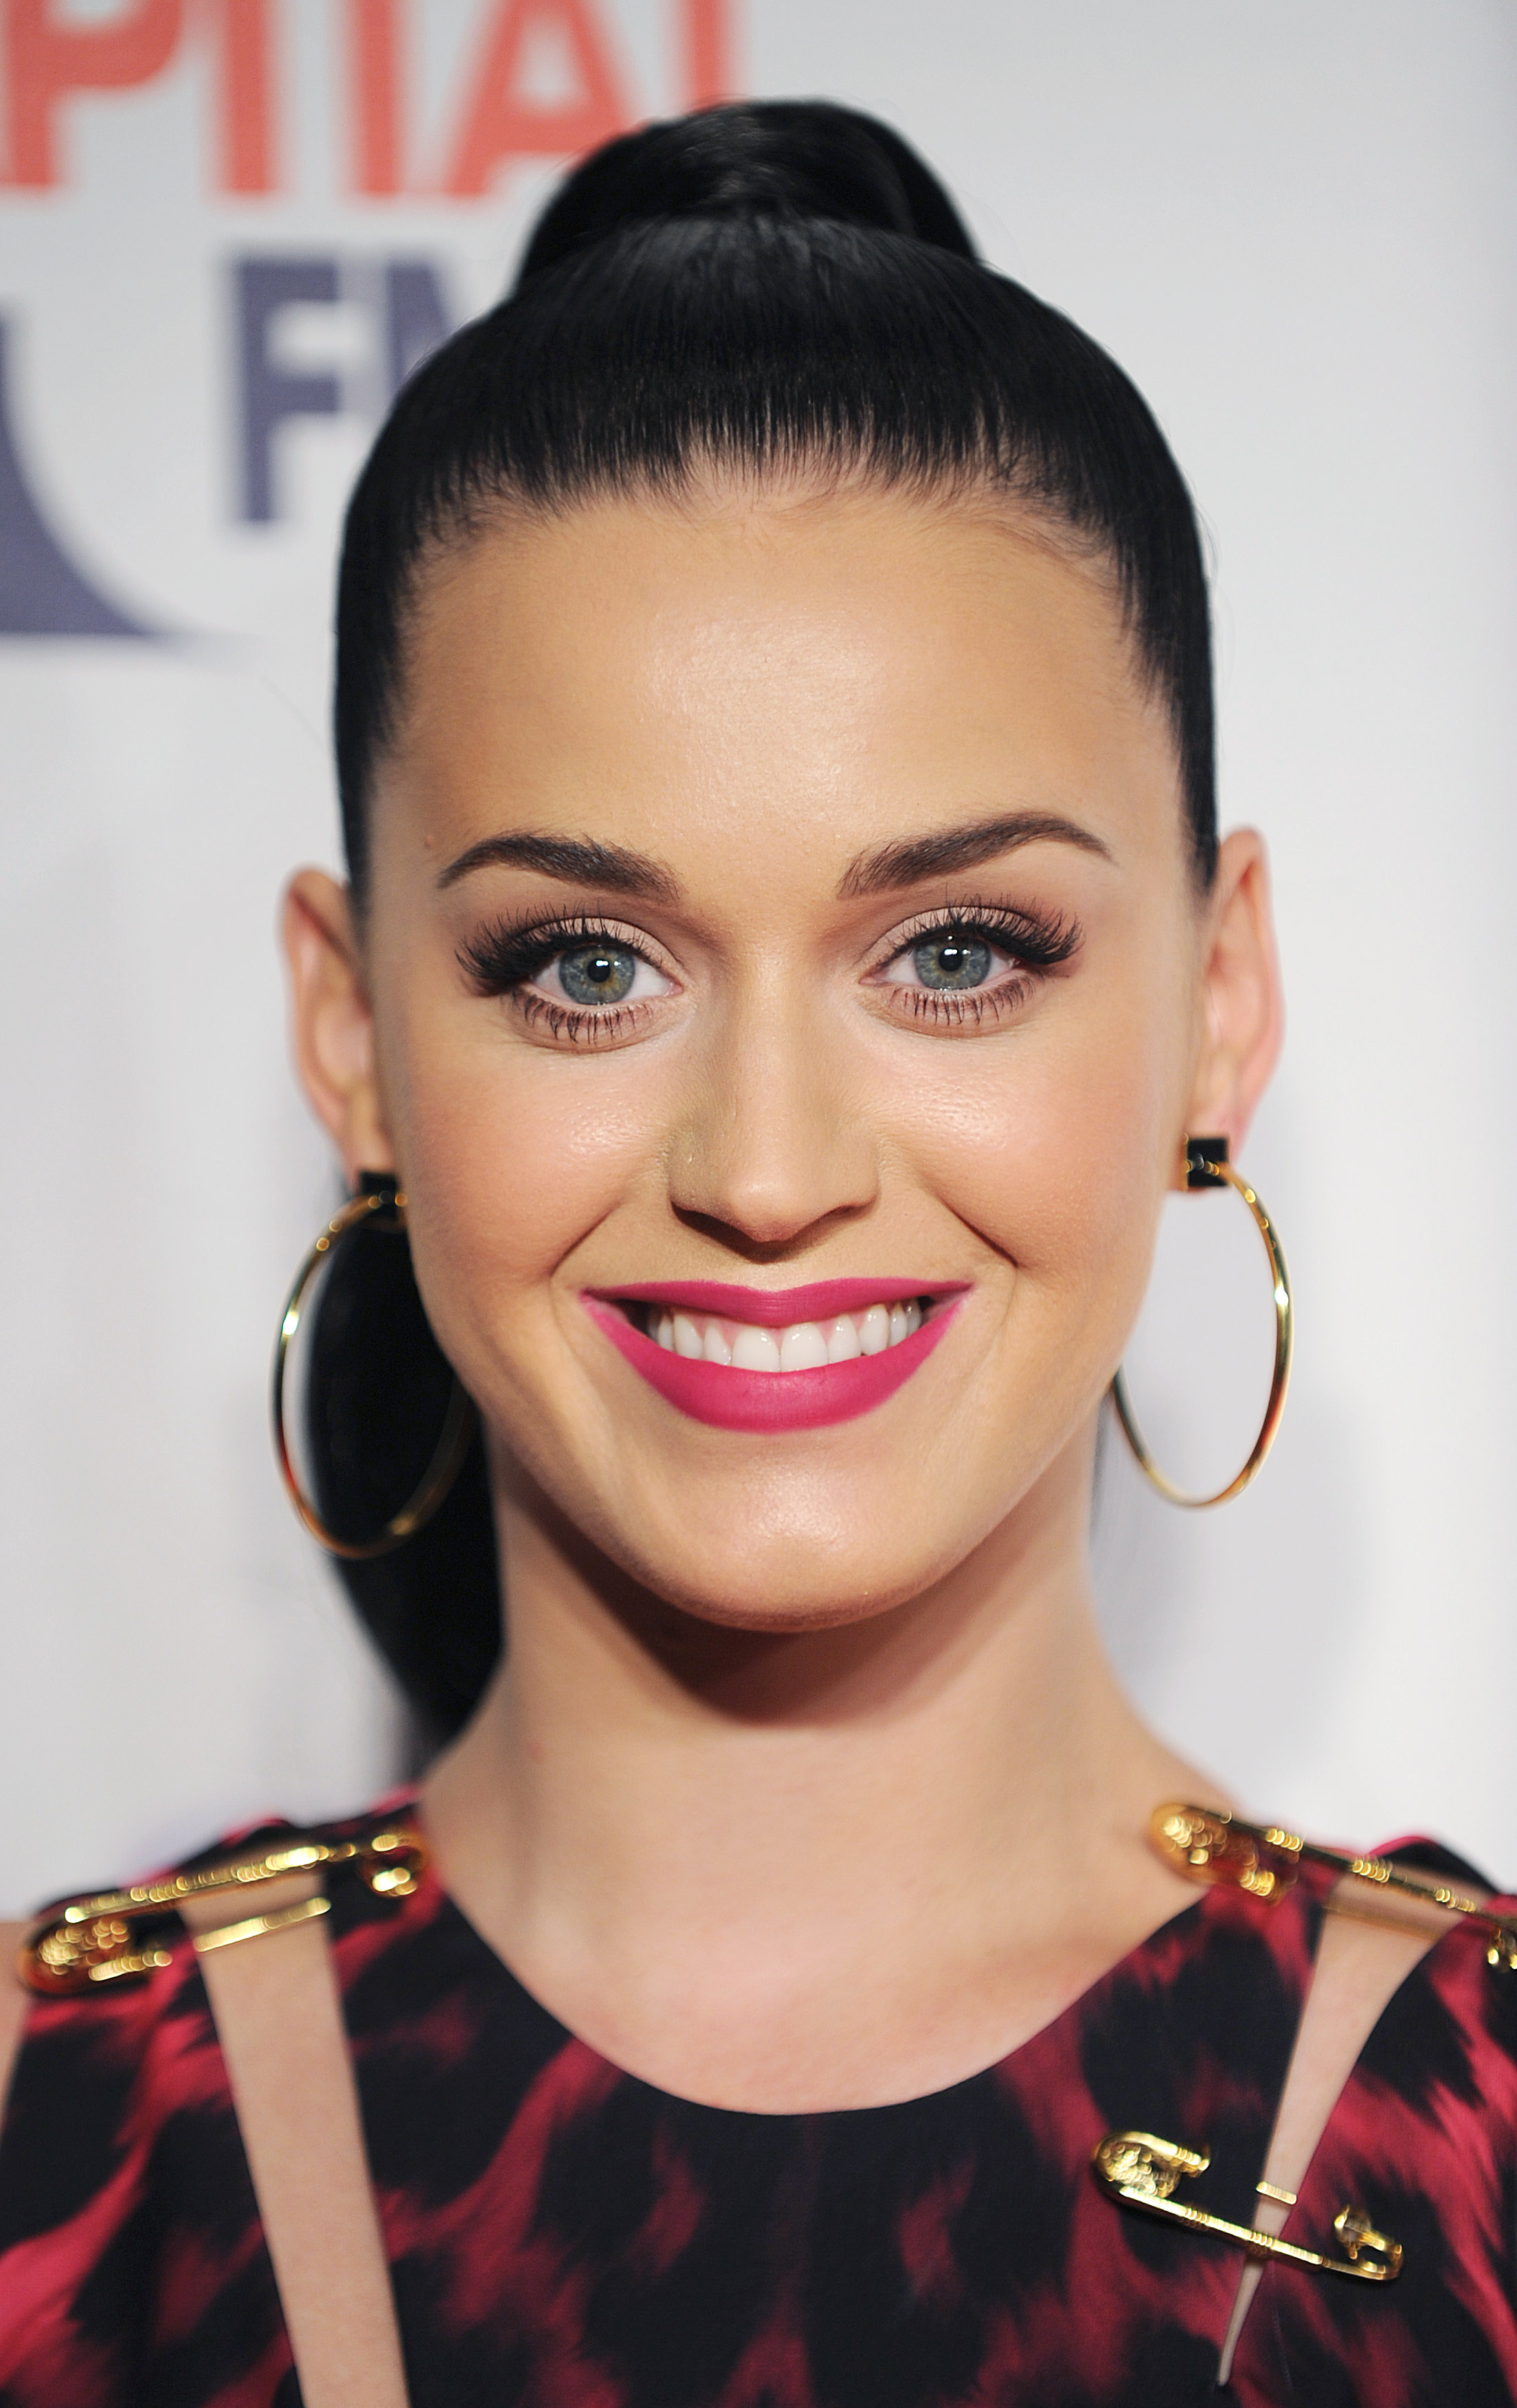 LONDON, UNITED KINGDOM - DECEMBER 07: Katy Perry attends on day 1 of the Capital FM Jingle Bell Ball at 02 Arena on December 7, 2013 in London, England. (Photo by Stuart C. Wilson/Getty Images)